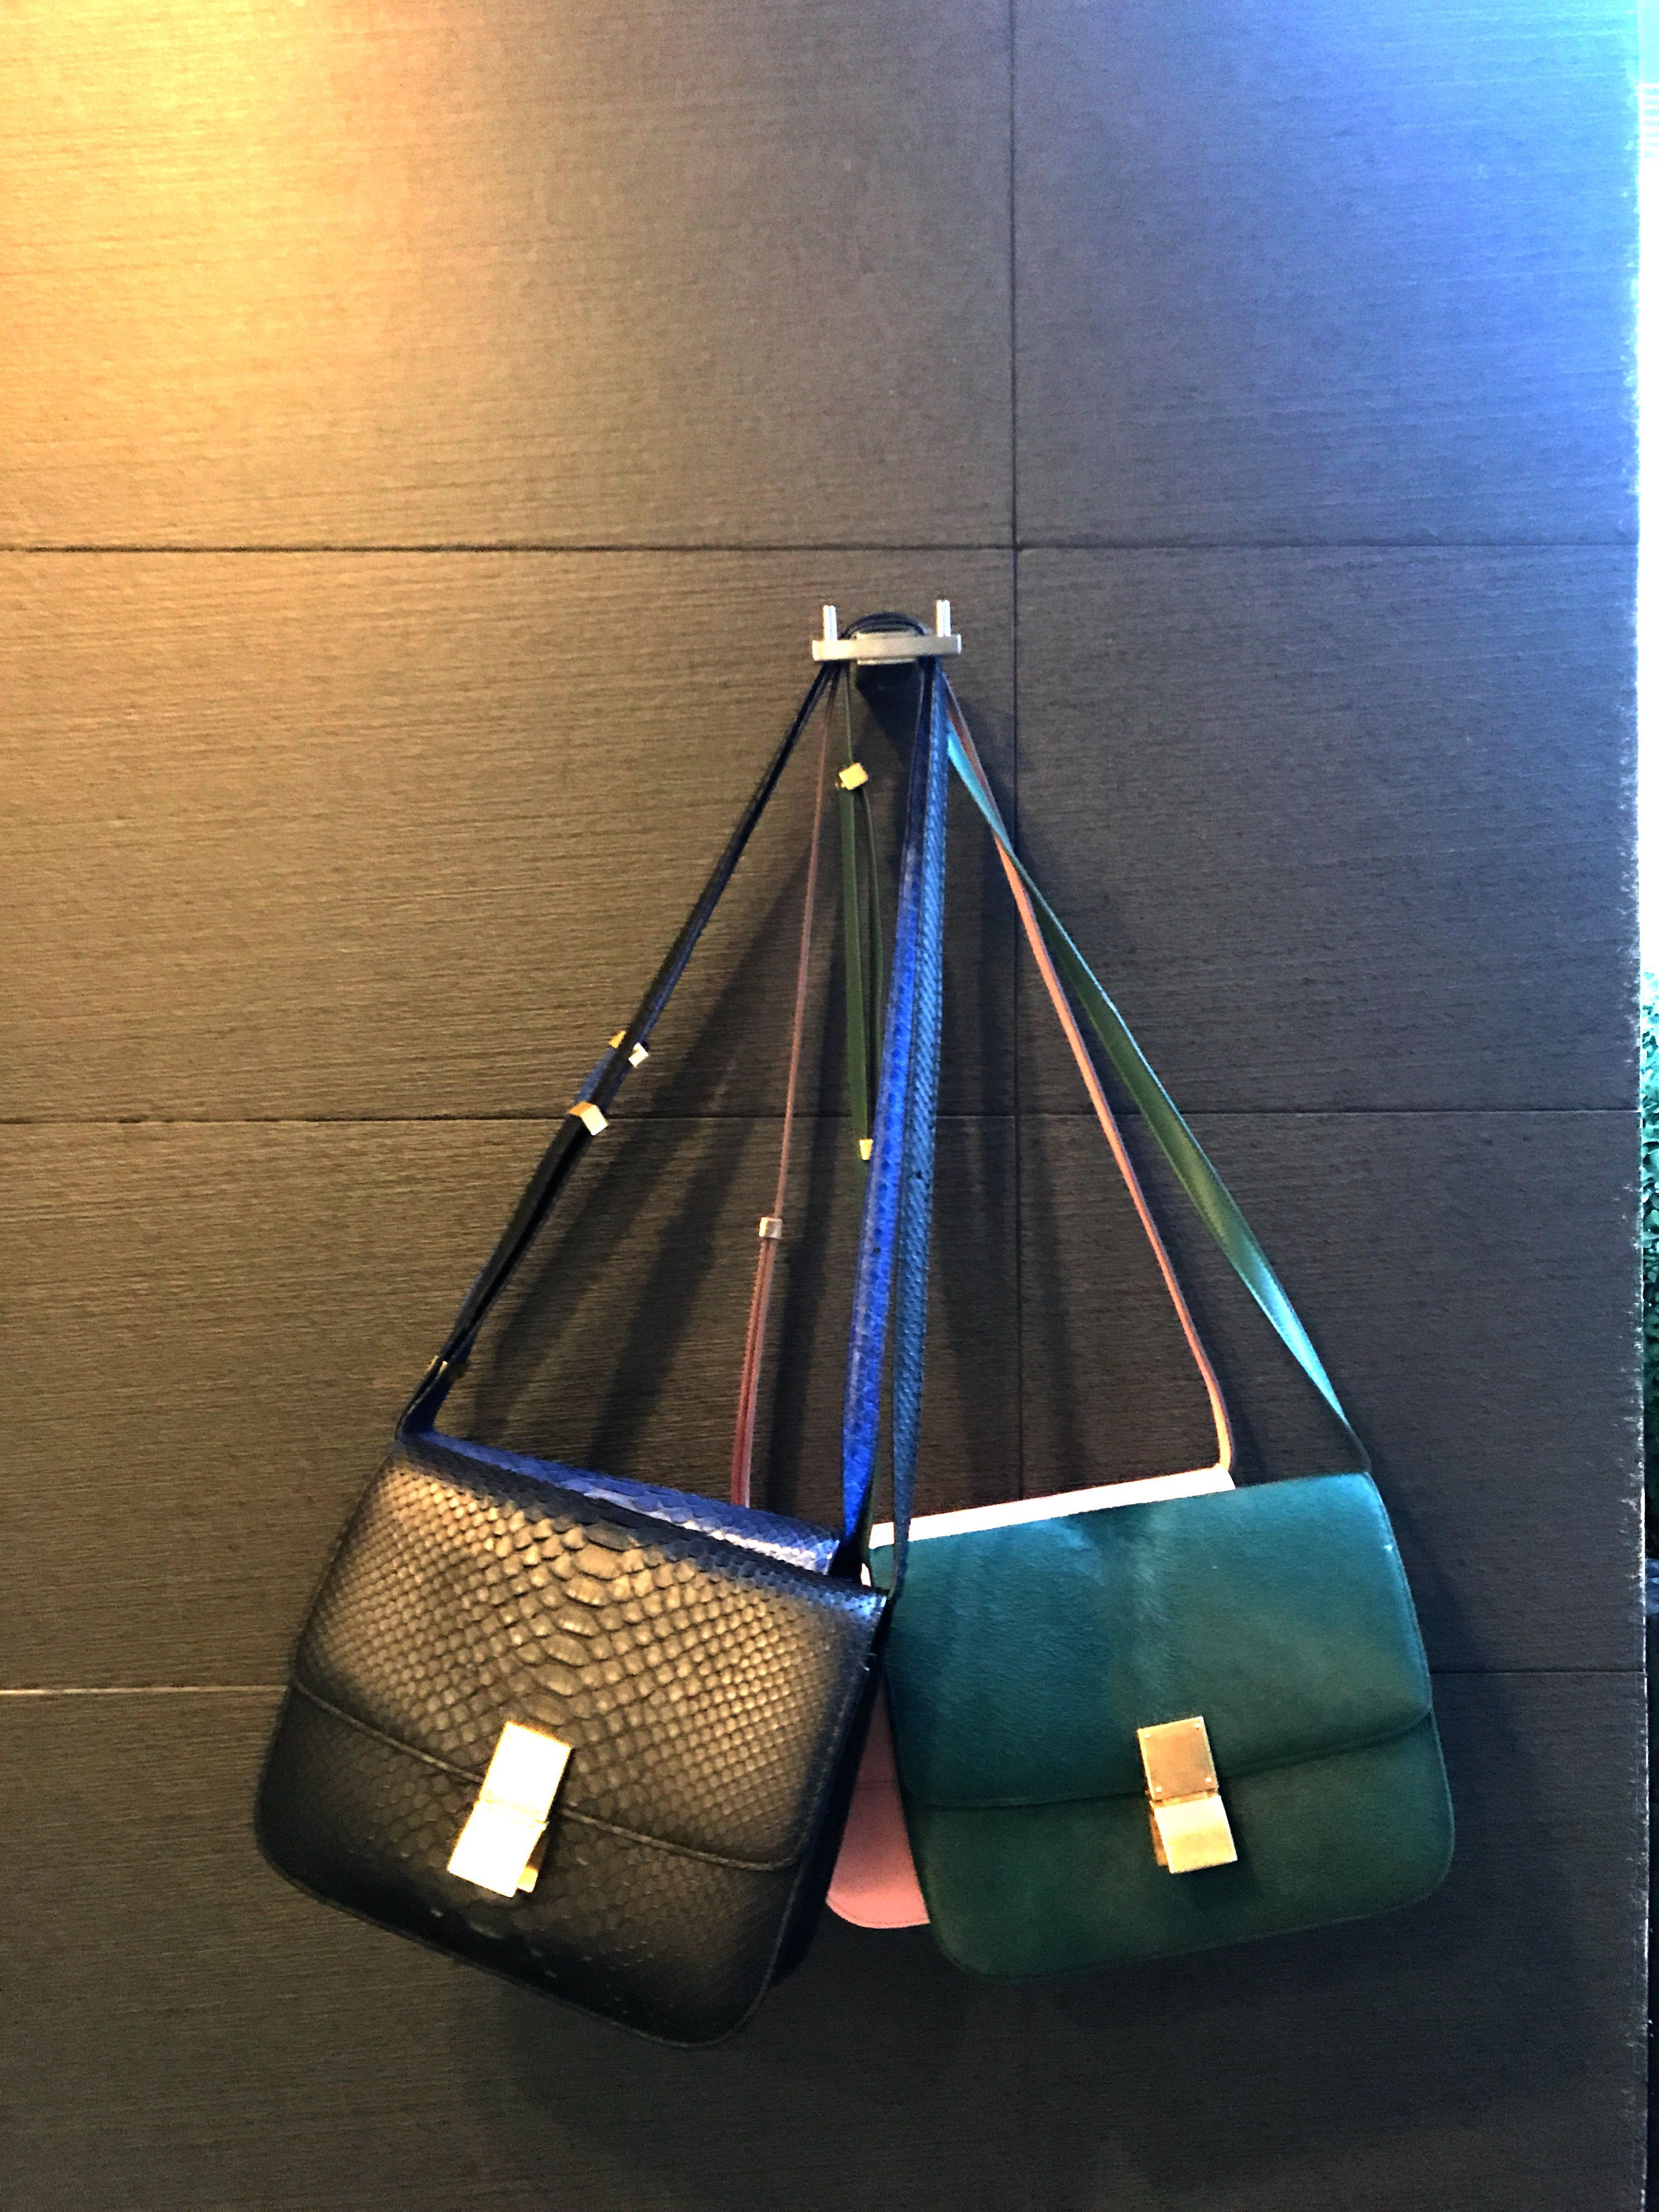 d898c22948 50% fire sale Celine box half price - rare and limited - python and ...